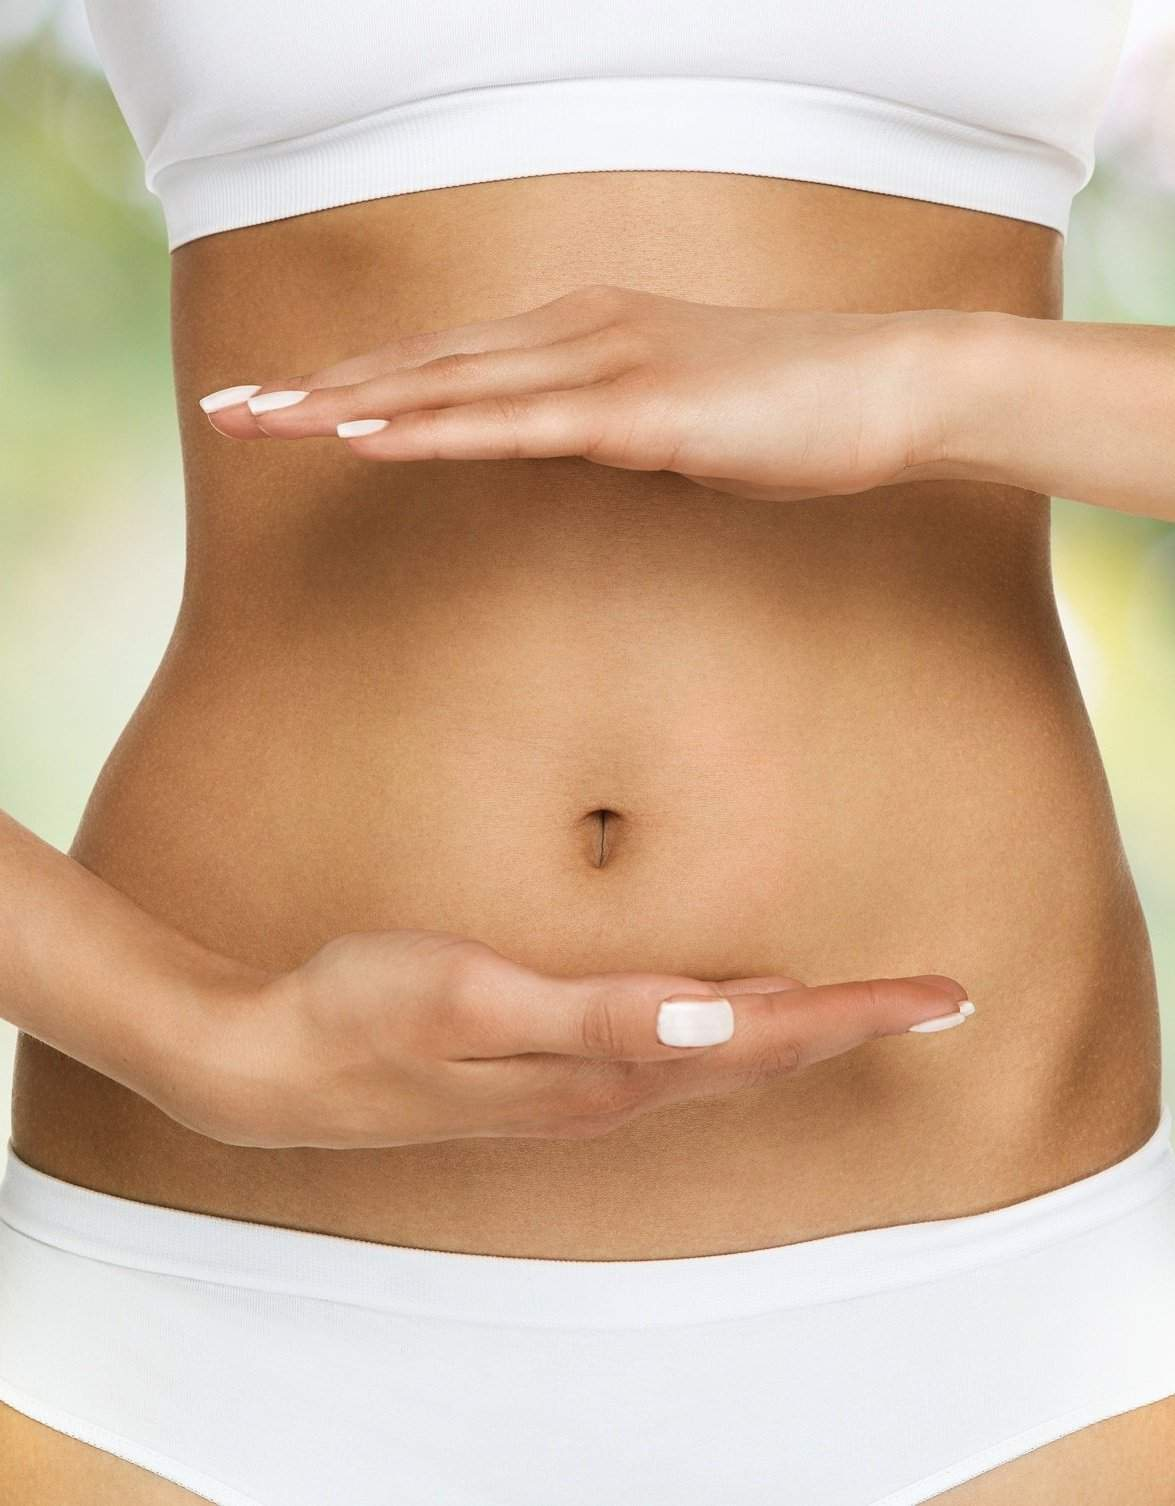 Tummy_Natural_2_L_iStock-503870432-055090-edited.jpg